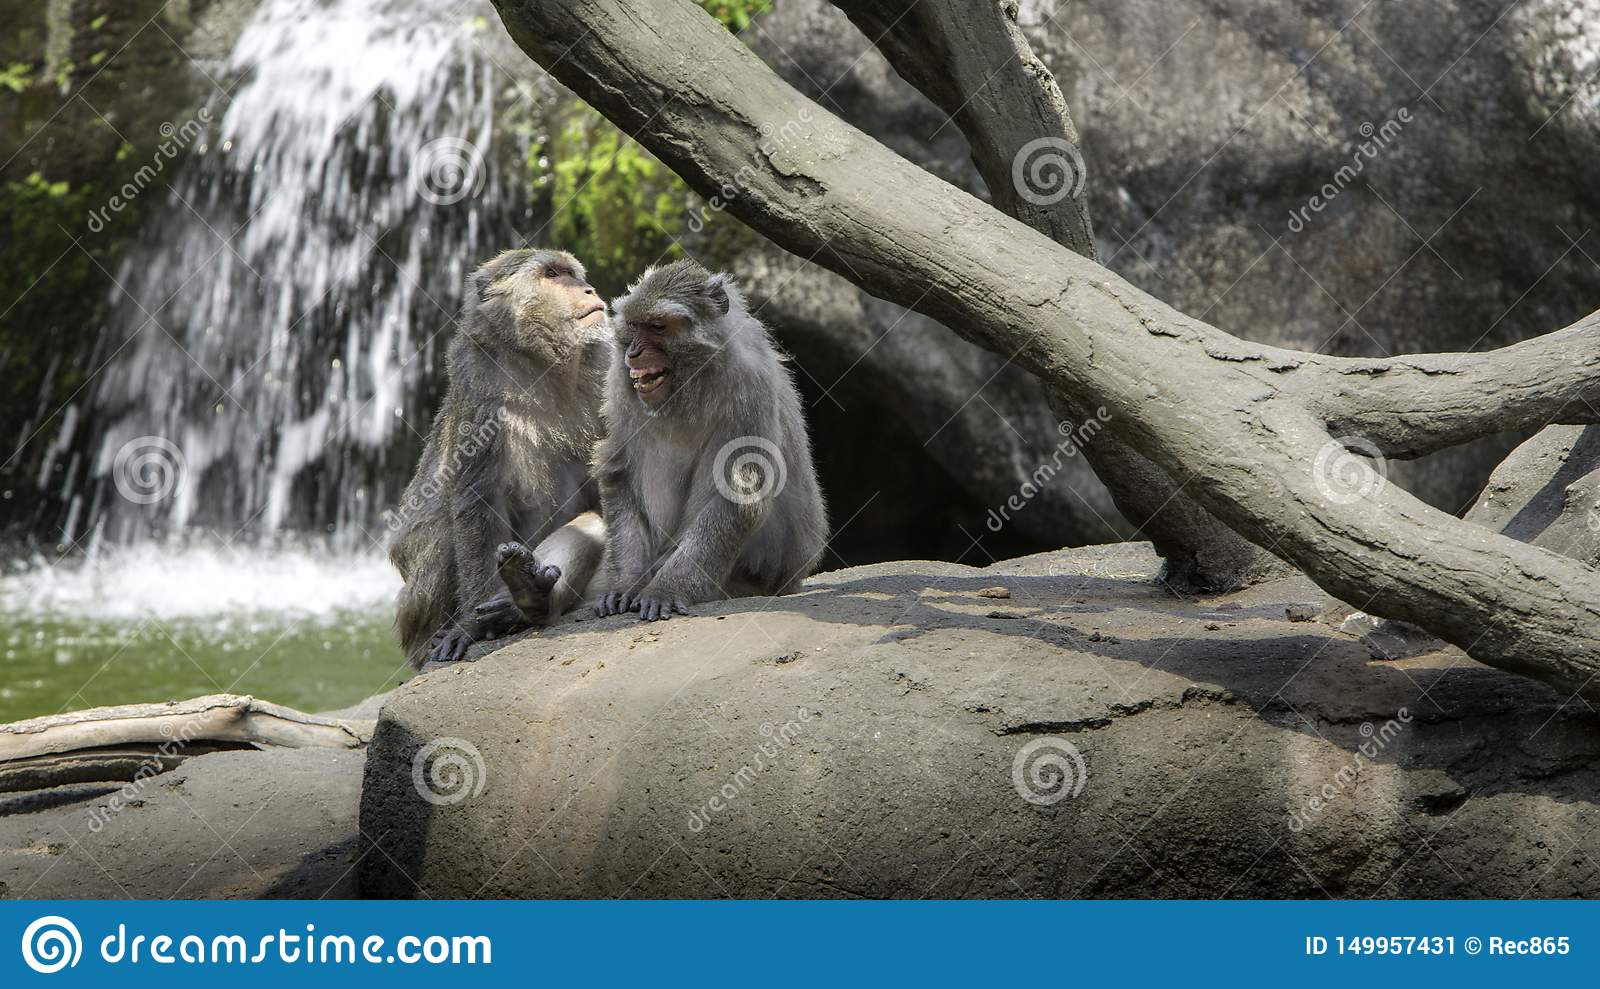 A funny scene of laughing monkeys. Two adults Formosan rock macaques